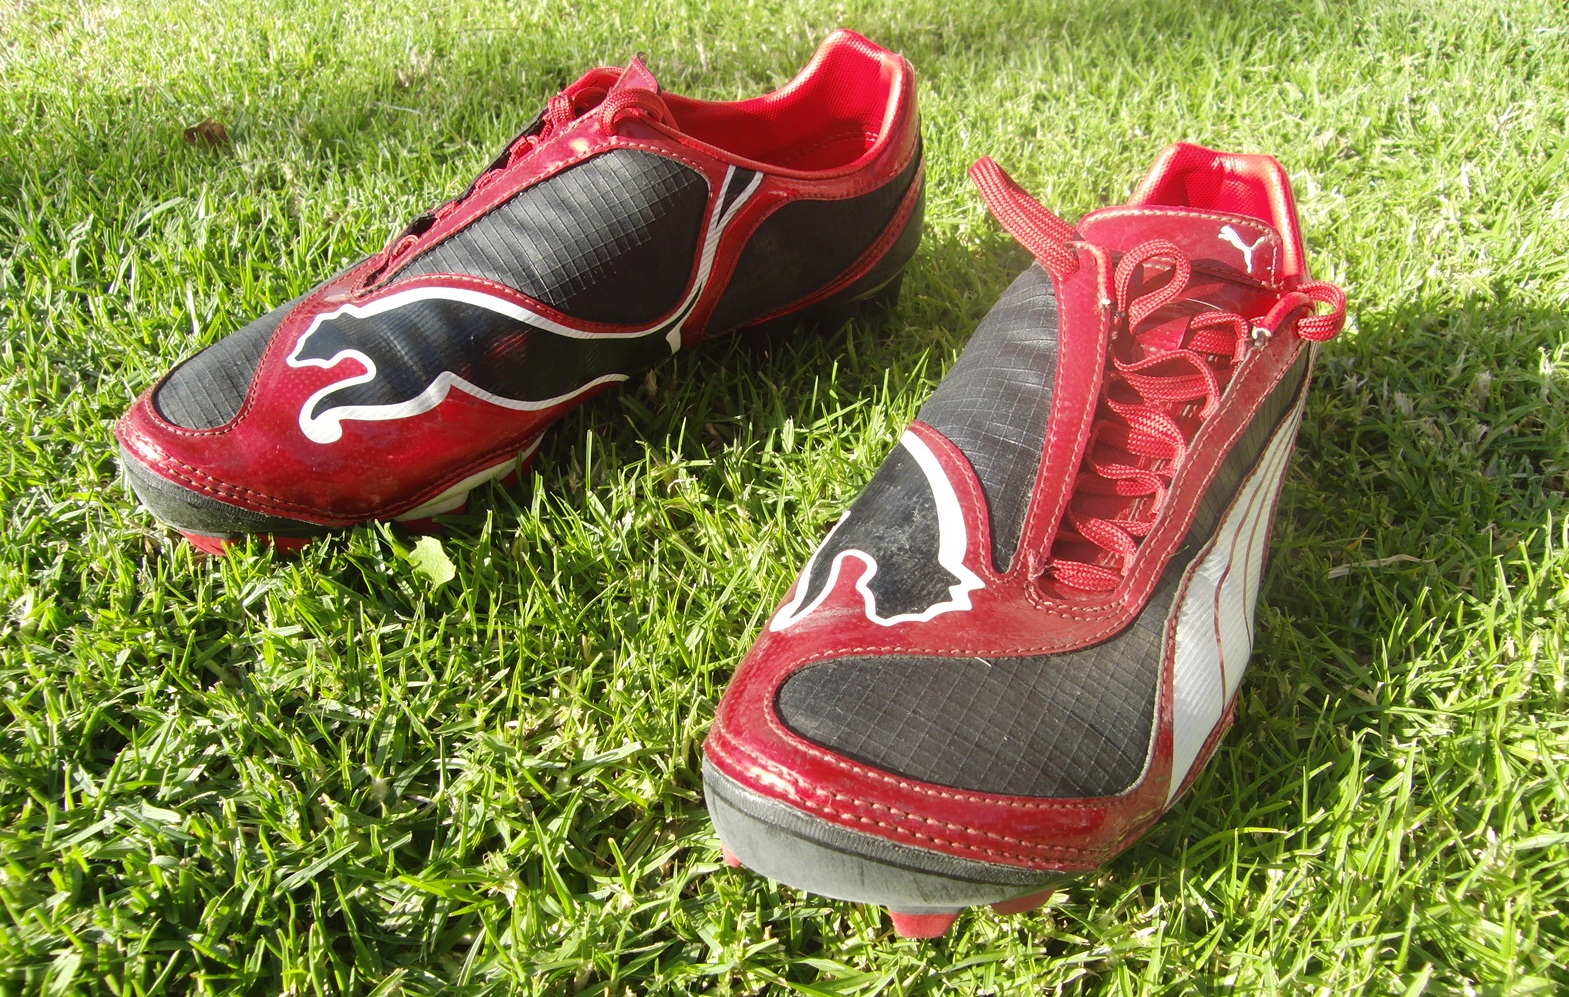 timeless design ad81a ee6ad V1.08 Puma Soccer Cleat